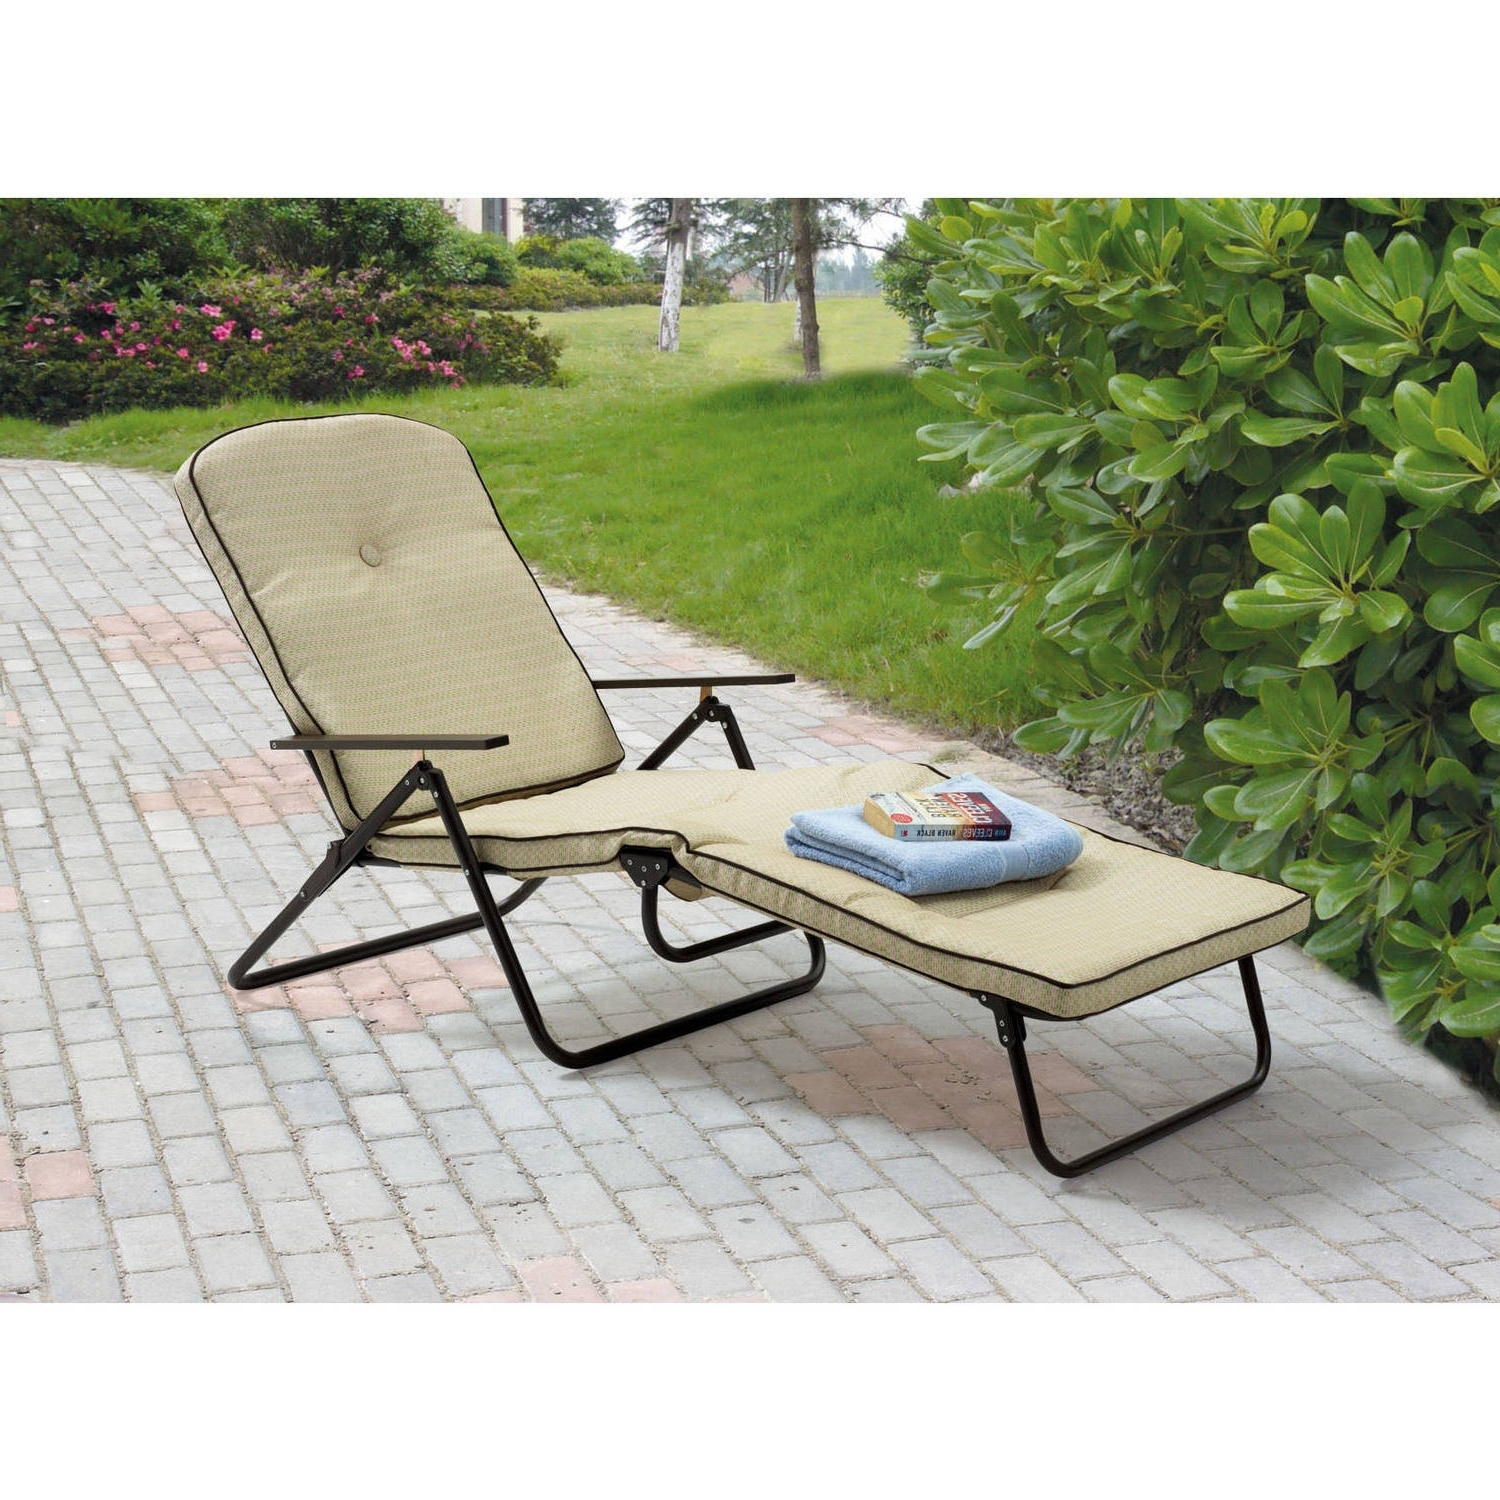 Popular Mainstays Sand Dune Outdoor Padded Folding Chaise Lounge, Tan Intended For Chaise Lounge Folding Chairs (View 13 of 15)